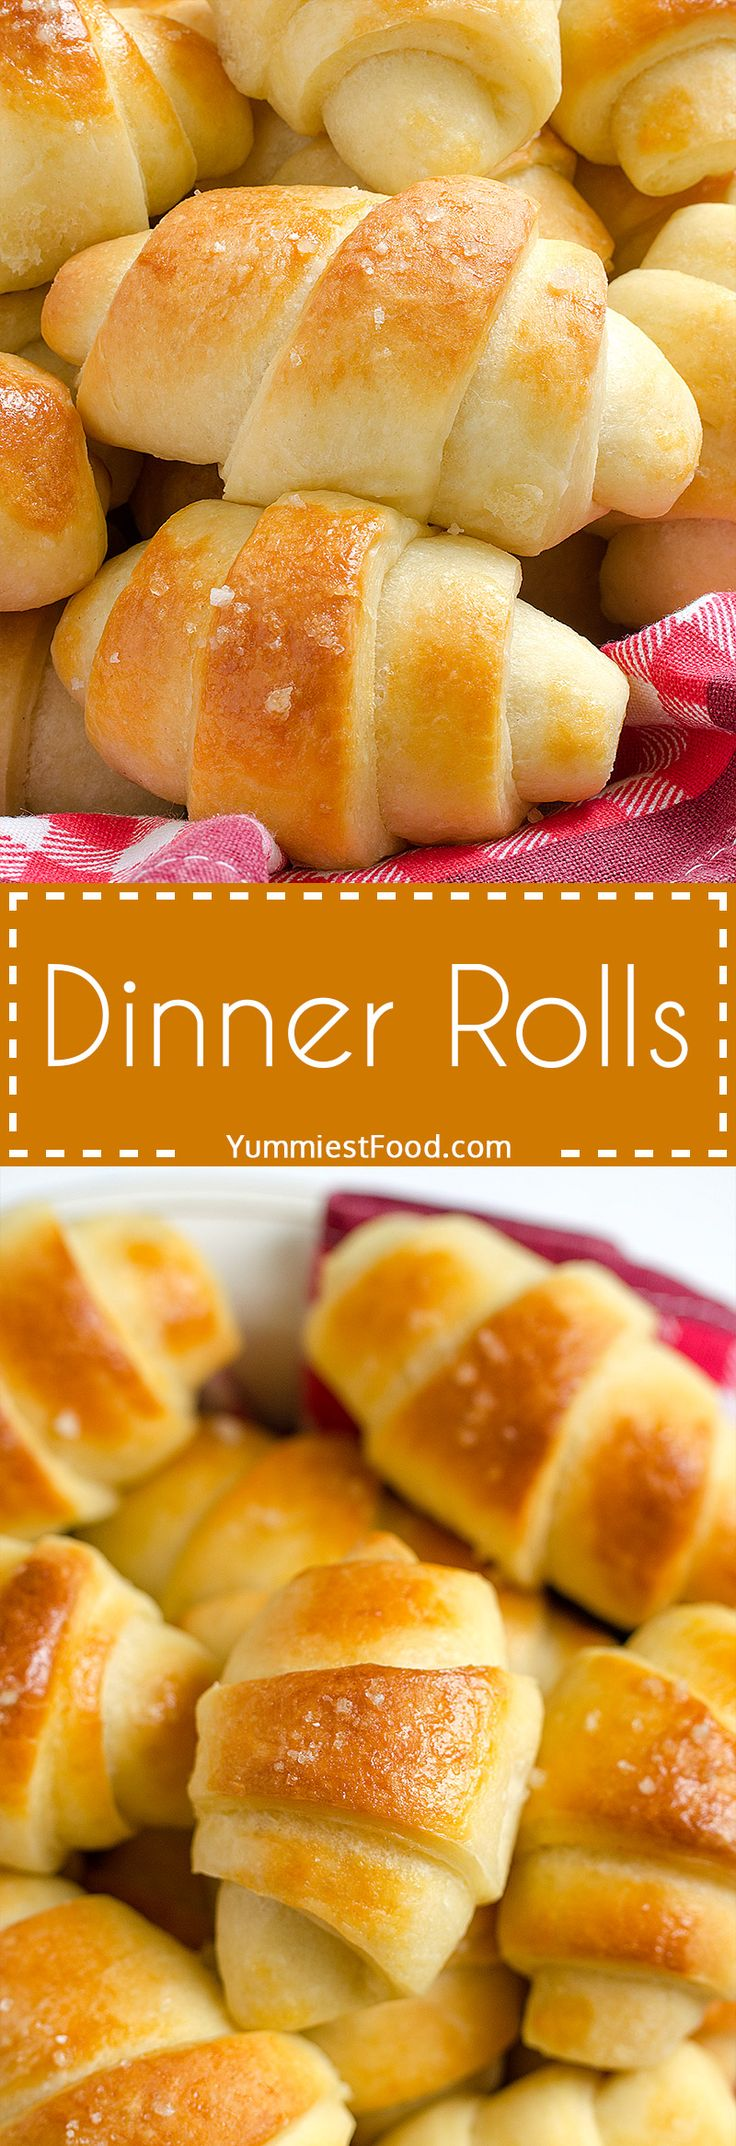 Dinner Rolls - delicious, light, soft and warm! Very easy to make! Dinner Rolls - this recipe has been a favorite recipe for years!